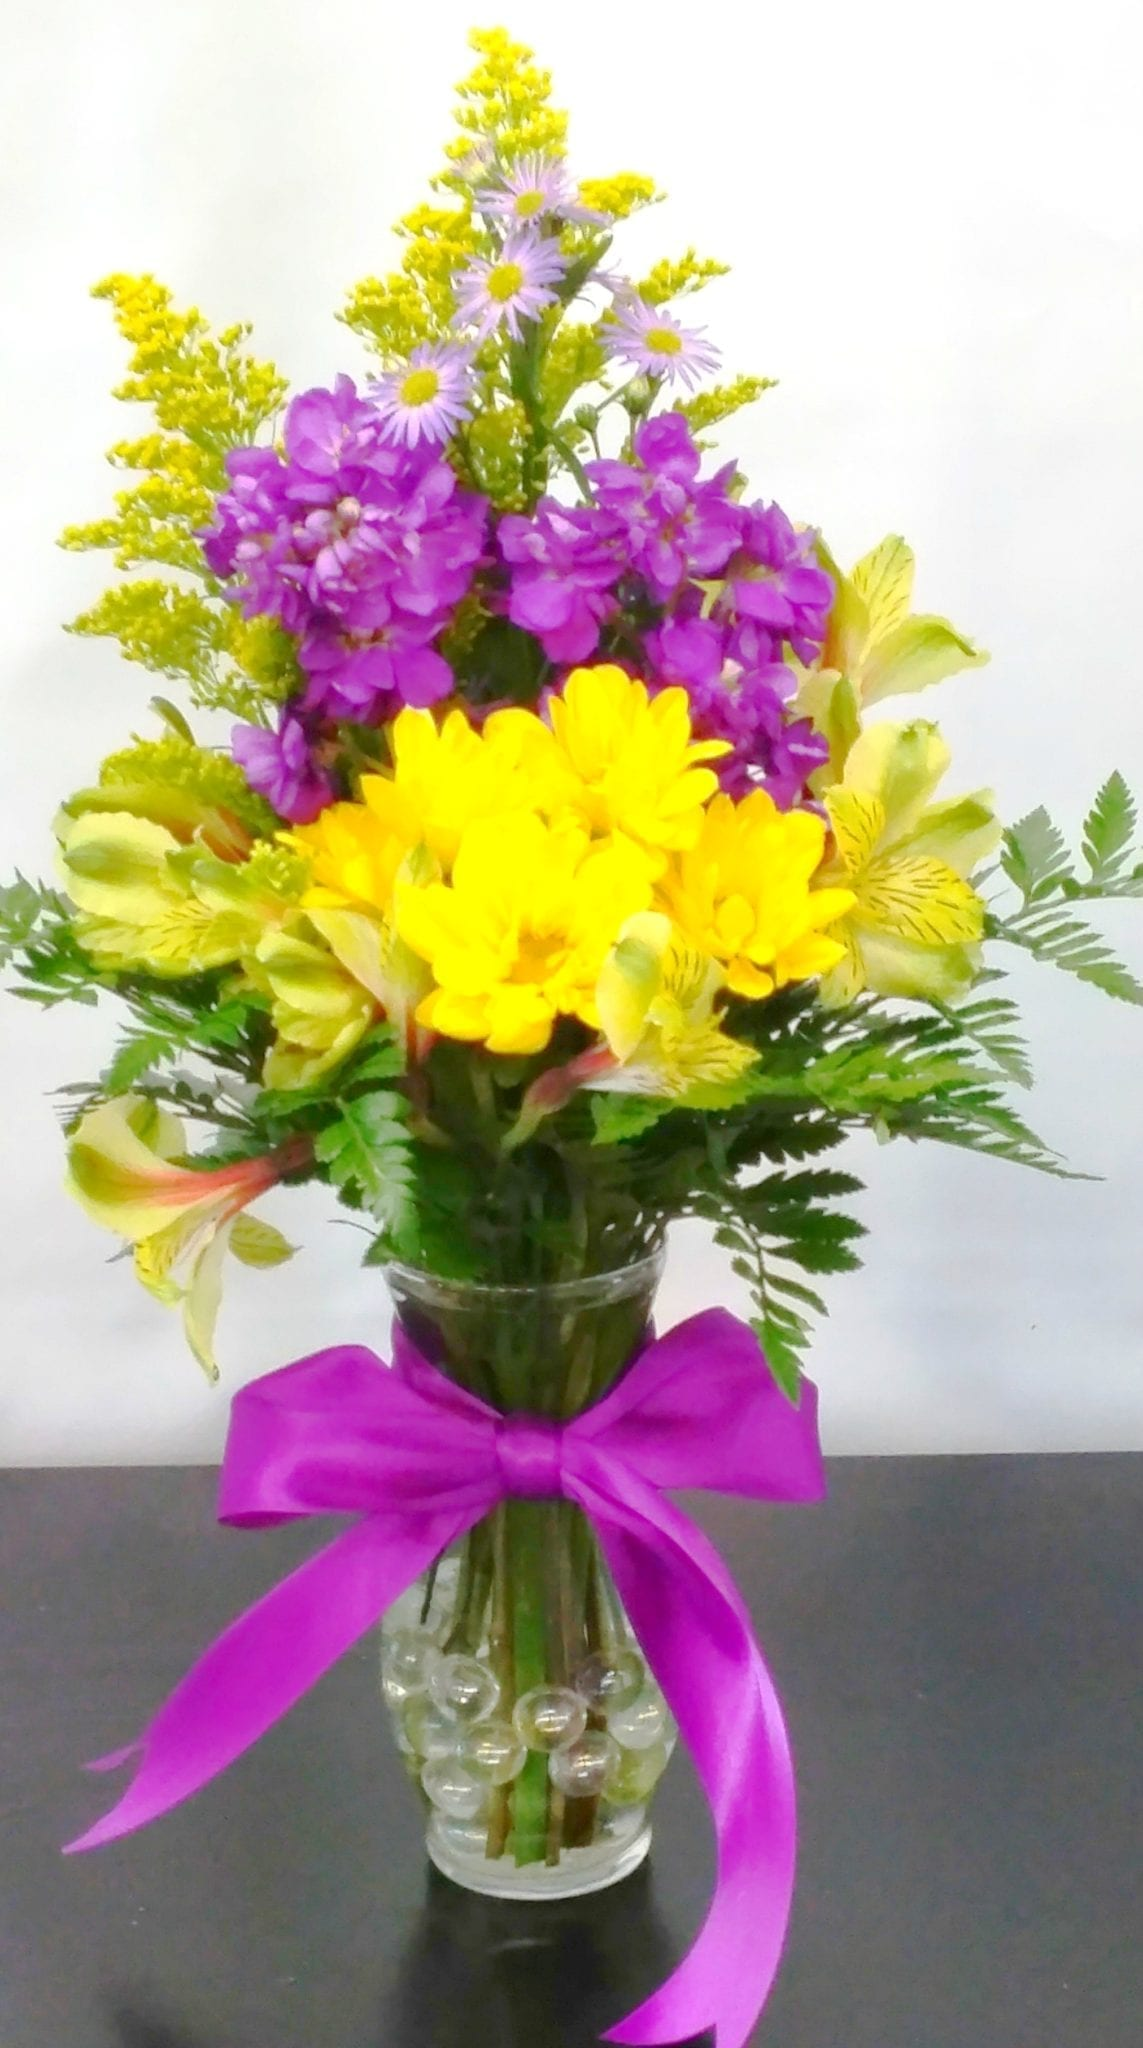 Flower Bouquets and Floral Arrangements Under $40 - Fiesta Flowers ...